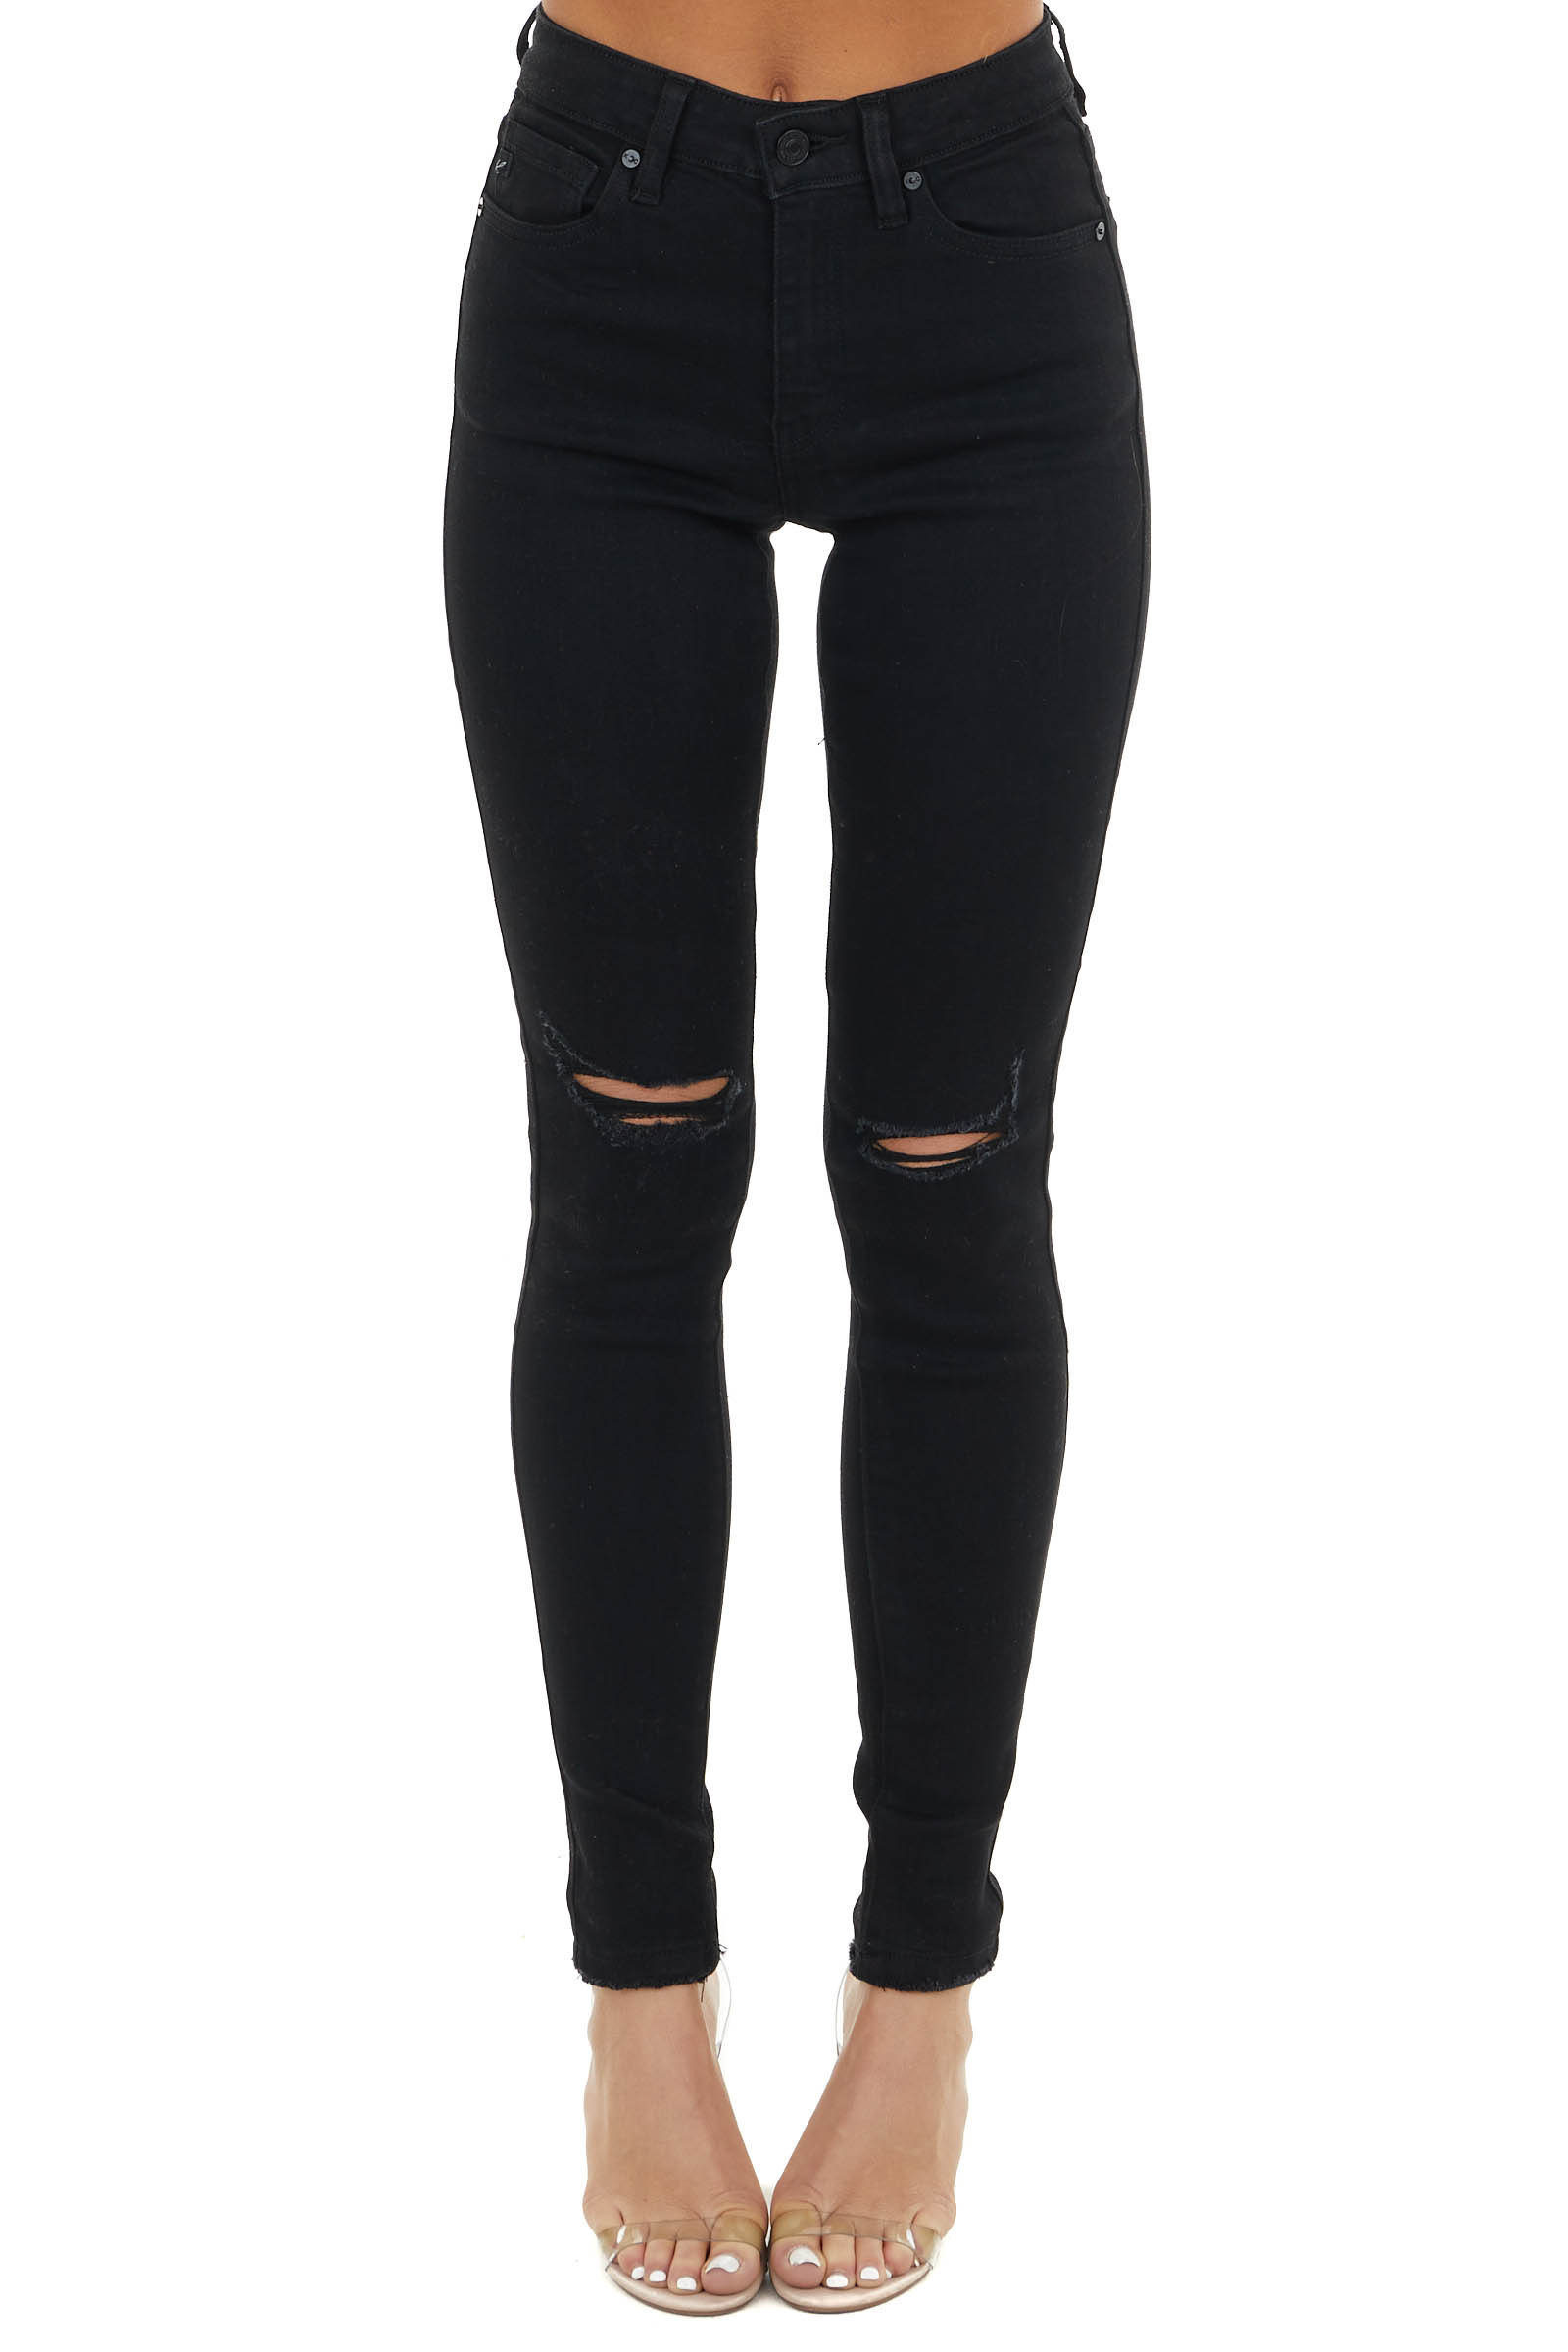 Black Mid Rise Denim Skinny Jeans with Distressing Detail